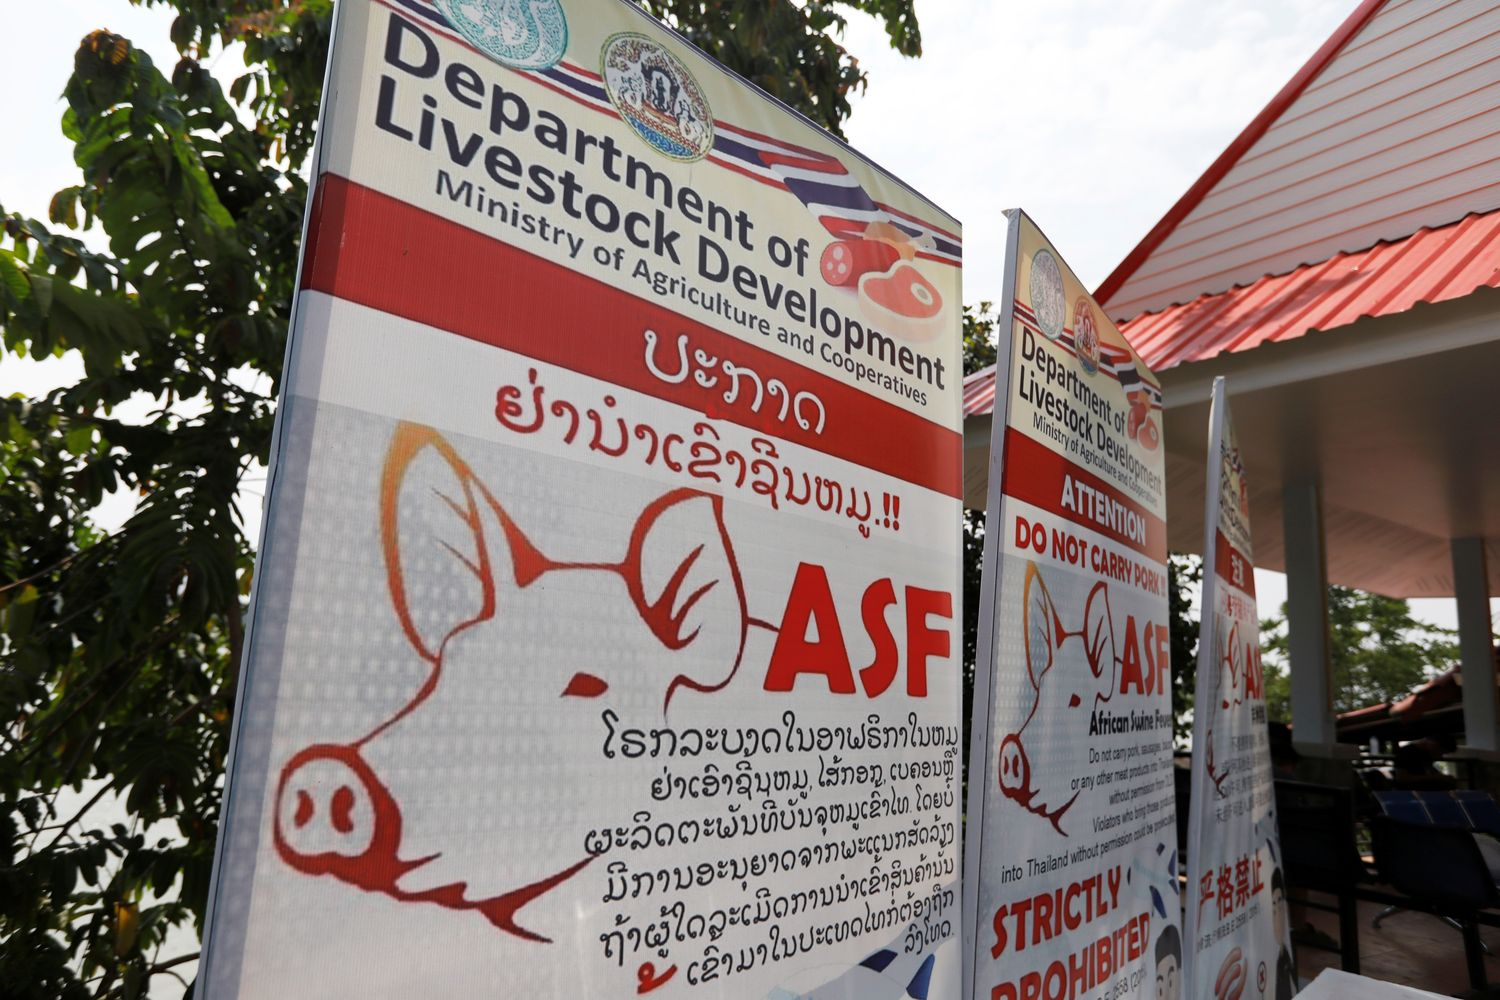 Public health banners alerting about swine fever is seen in Chiang Rai on May 16. (Reuters photo)